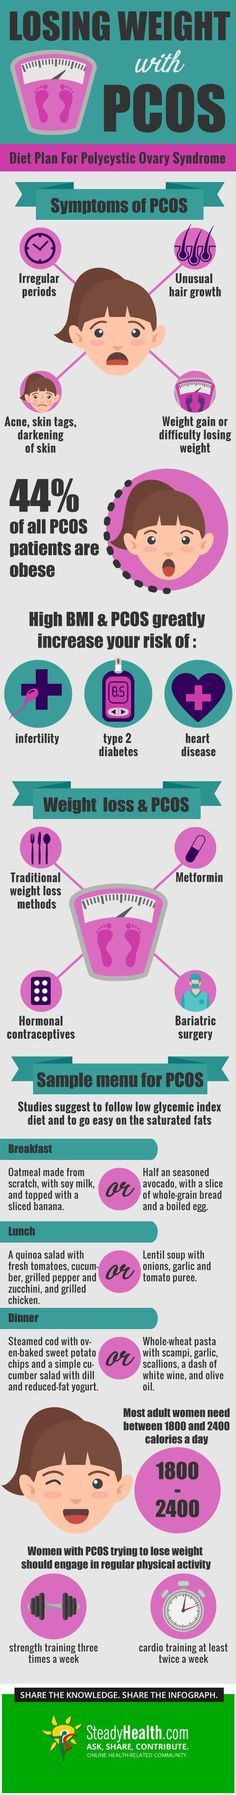 Losing weight with PCOS is important if you're overweight or obese, but it's also easier said than done. We have some tips for you.